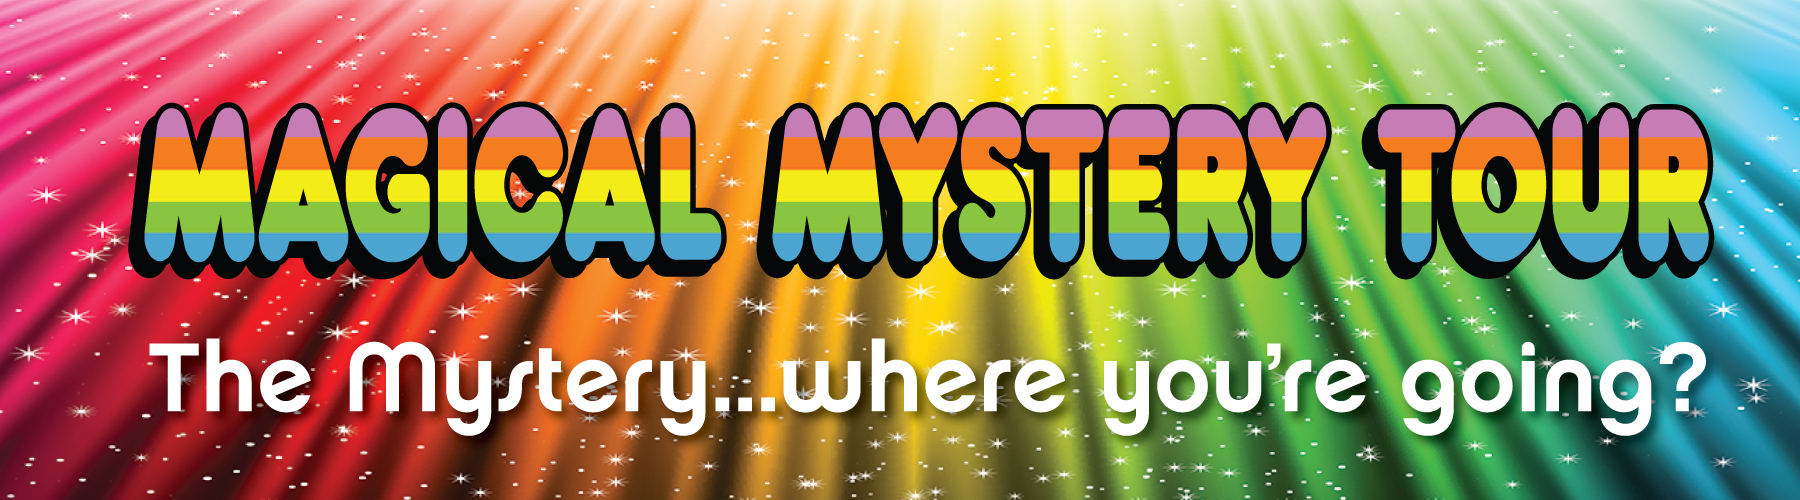 Magical Mystery Tour June 18th 2016